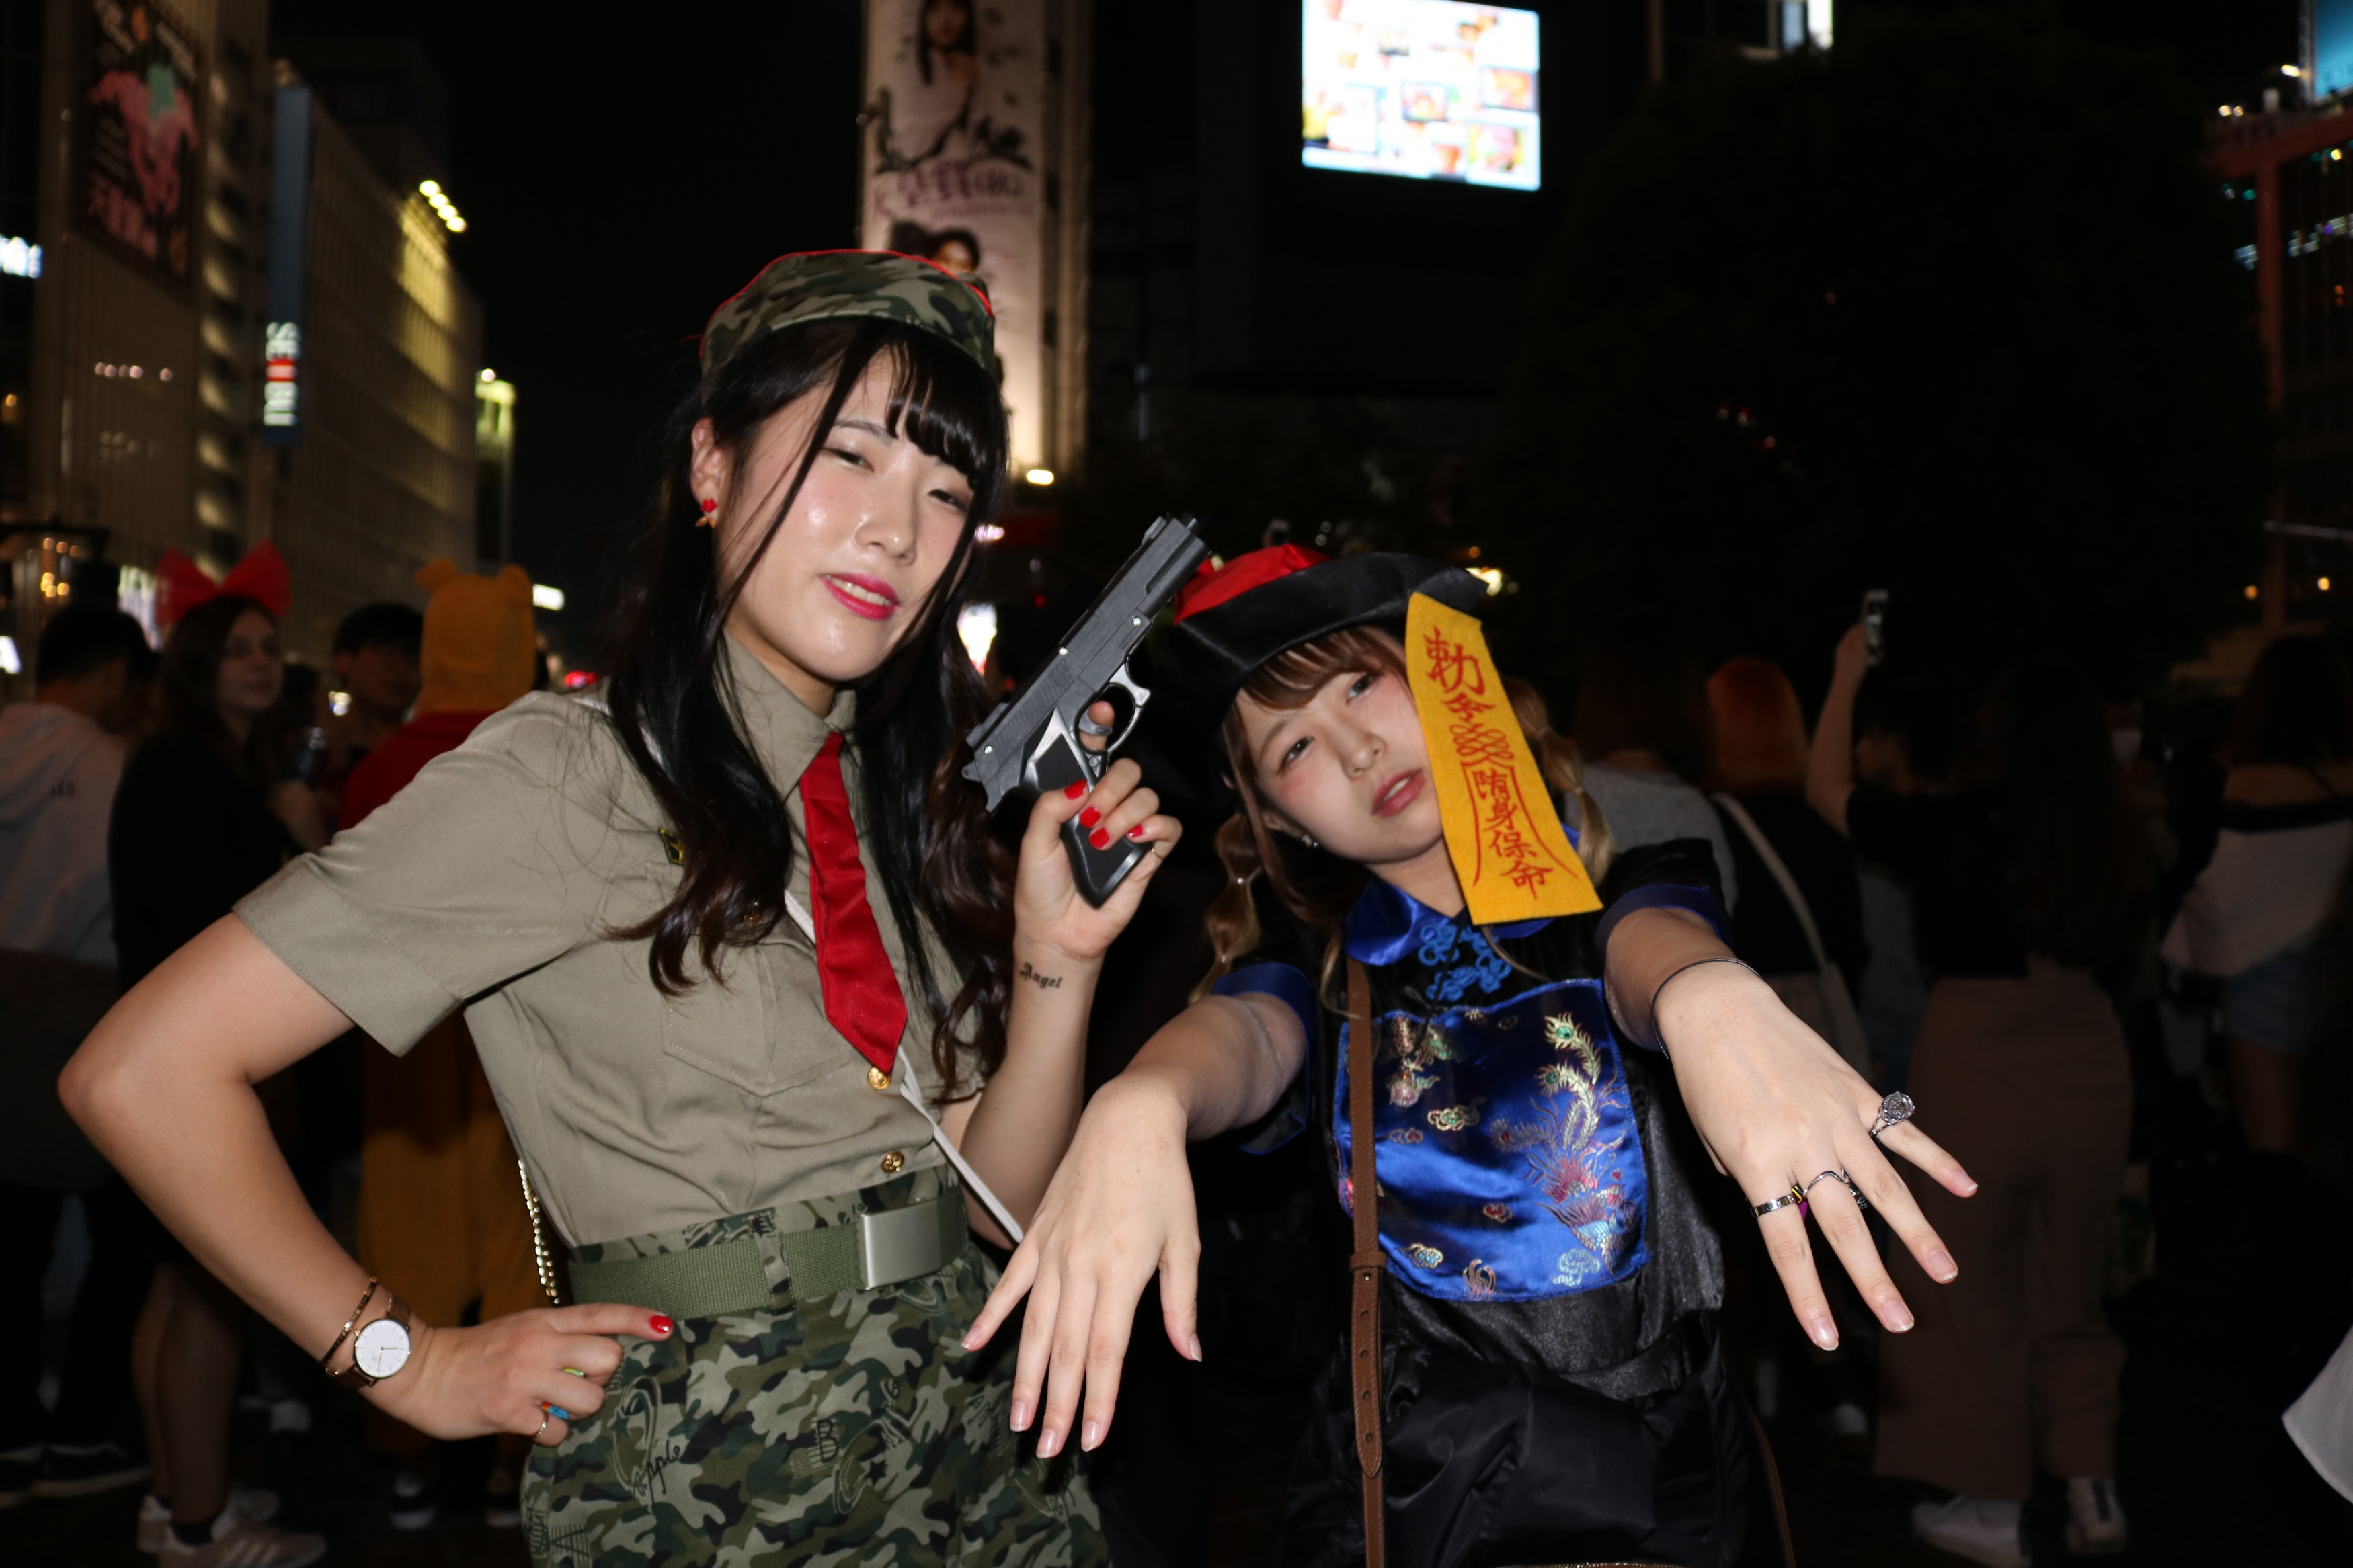 Halloween Costume Shibuya Army Girl and China Doll